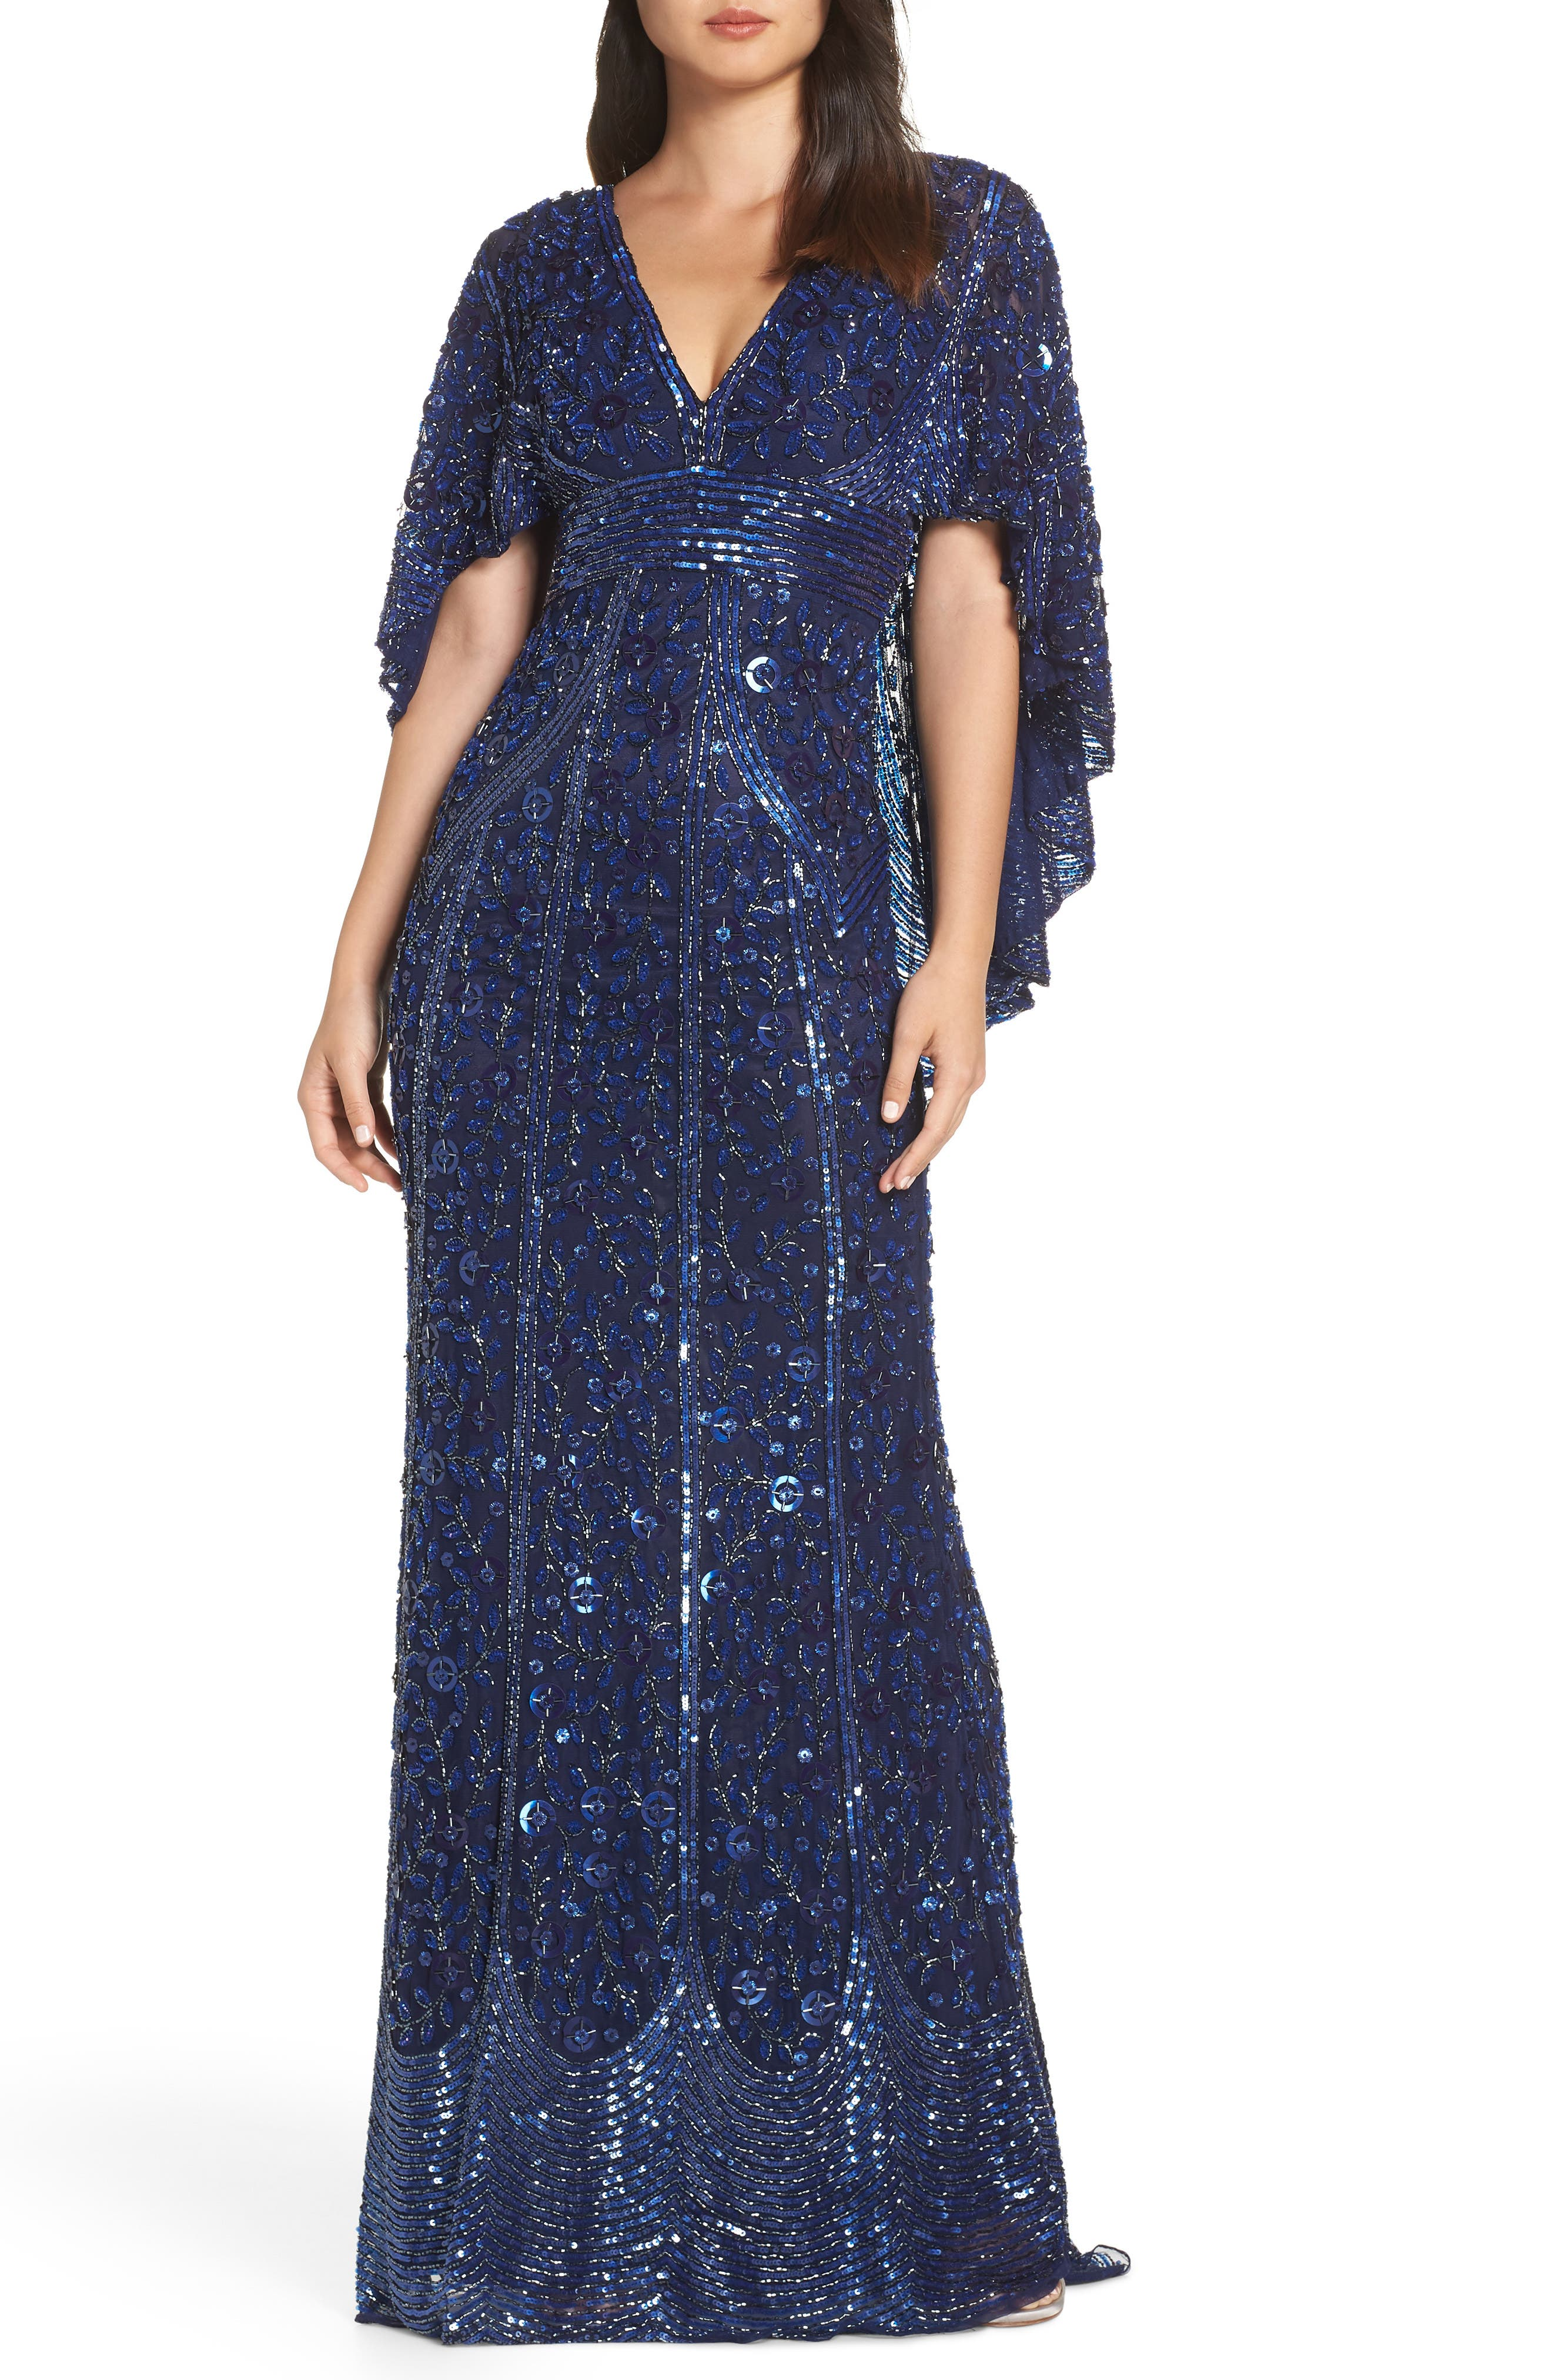 MAC DUGGAL, Sequin Cape Sleeve Evening Dress, Main thumbnail 1, color, MIDNIGHT